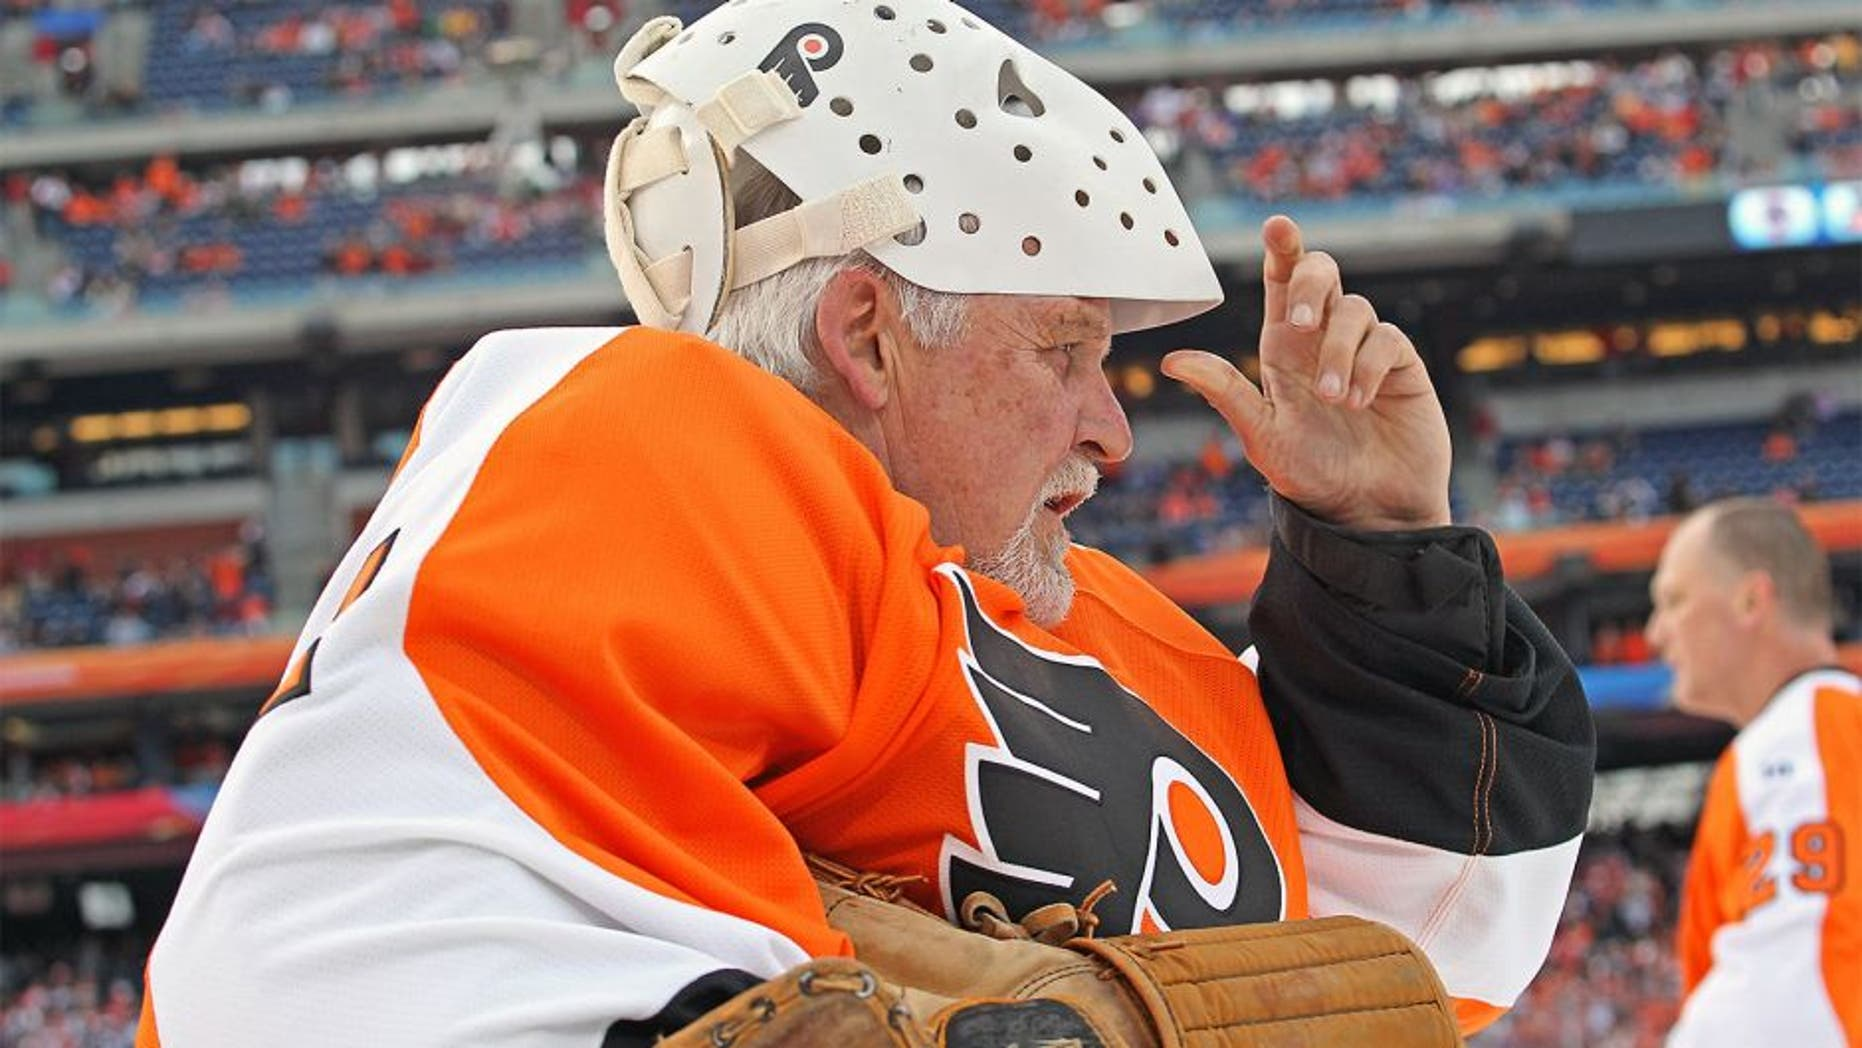 PHILADELPHIA, PA - DECEMBER 31: Bernie Parent #1 of the Philadelphia Flyers looks on during warmups prior to his game against the New York Rangers during the Alumni Game prior to the 2012 NHL Bridgestone Winter Classic on December 31, 2011 at Citizens Bank Park in Philadelphia, Pennsylvania. (Photo by Len Redkoles/NHLI via Getty Images)